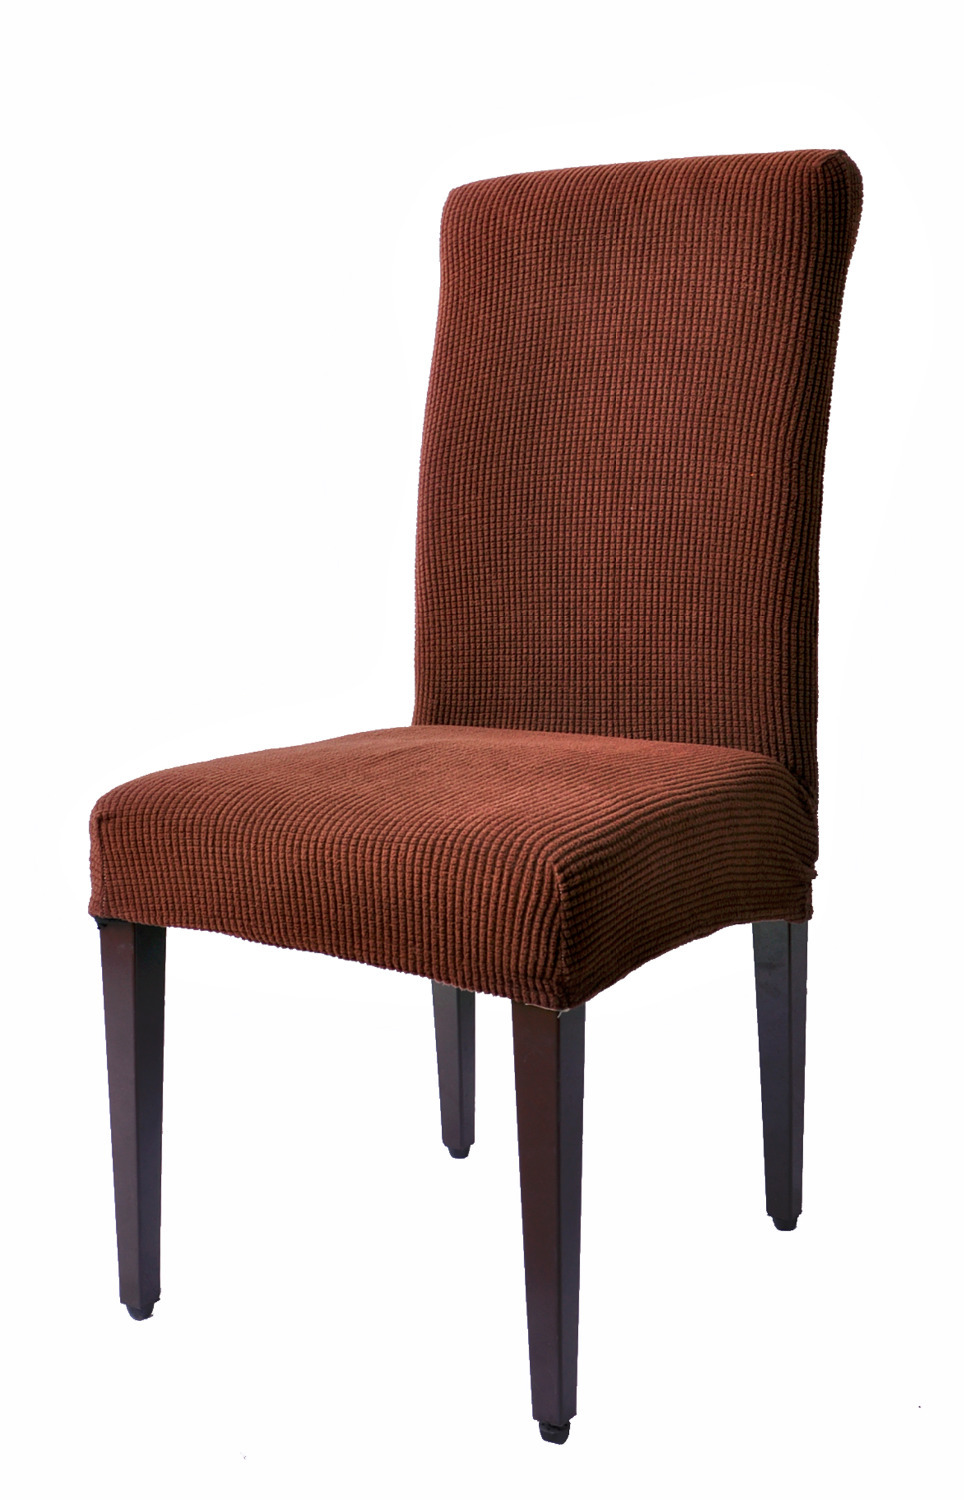 Checks 15% Spandex Jacquard Fabric Dyed Dining Room Decorate Chair Covers Anti Mite Washable Chair Slipcoves Chair Cap 4-Piece(China (Mainland))